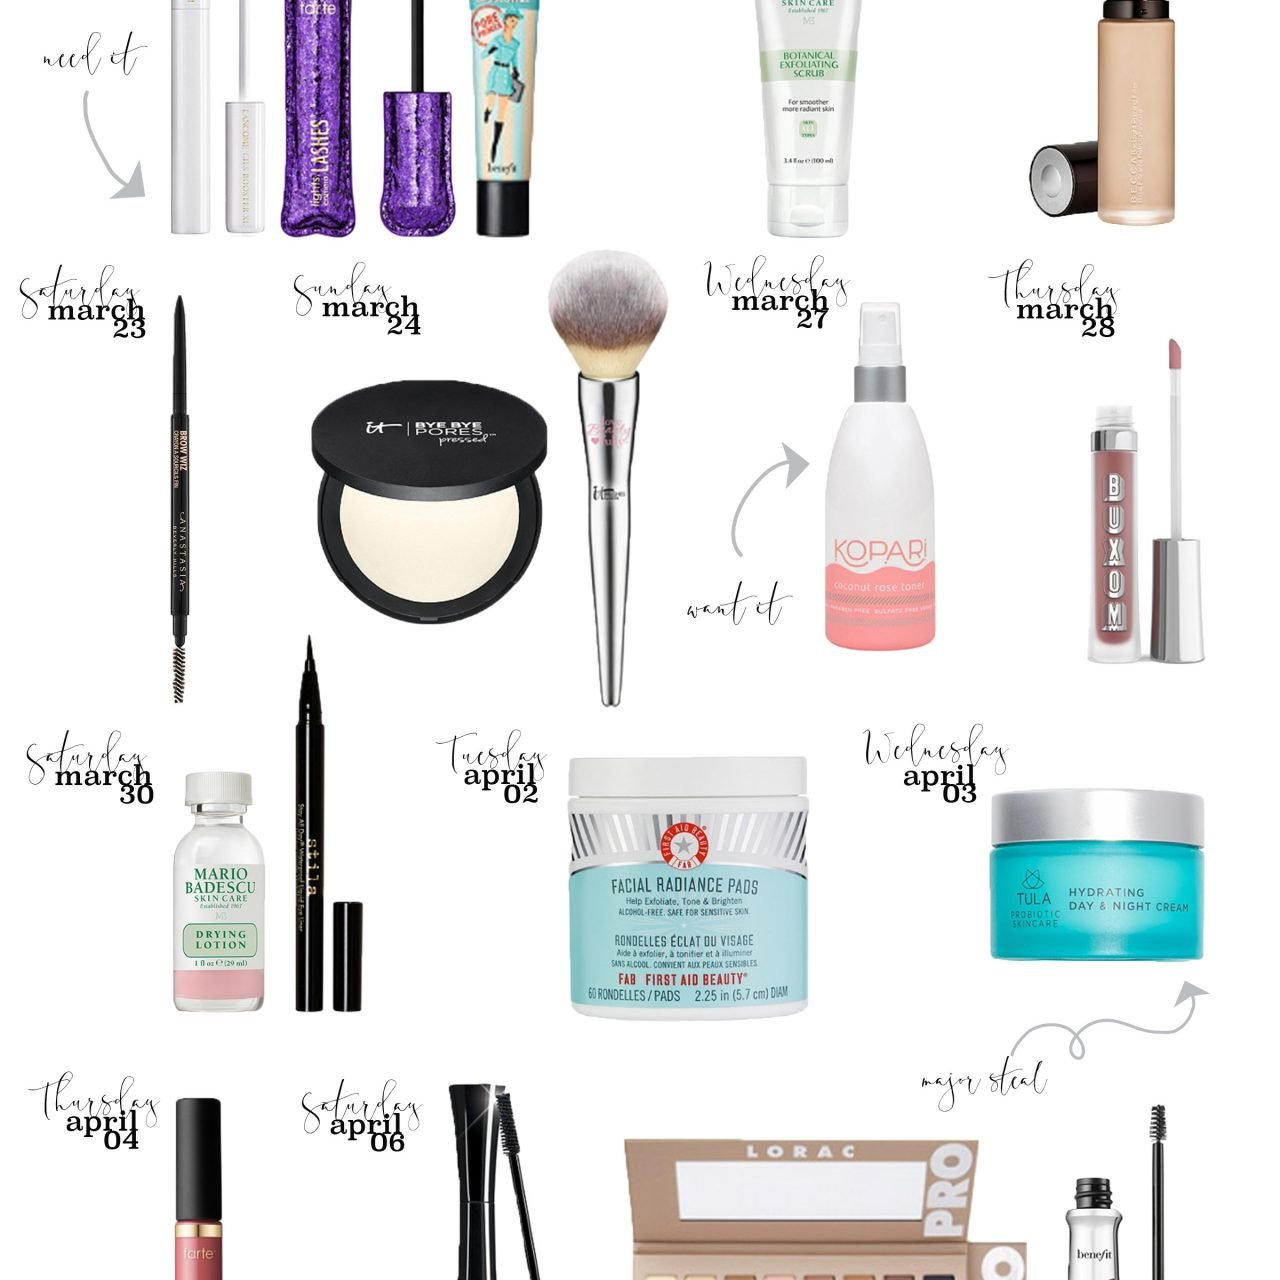 Ulta's 21 Days of Beauty Shopping Guide